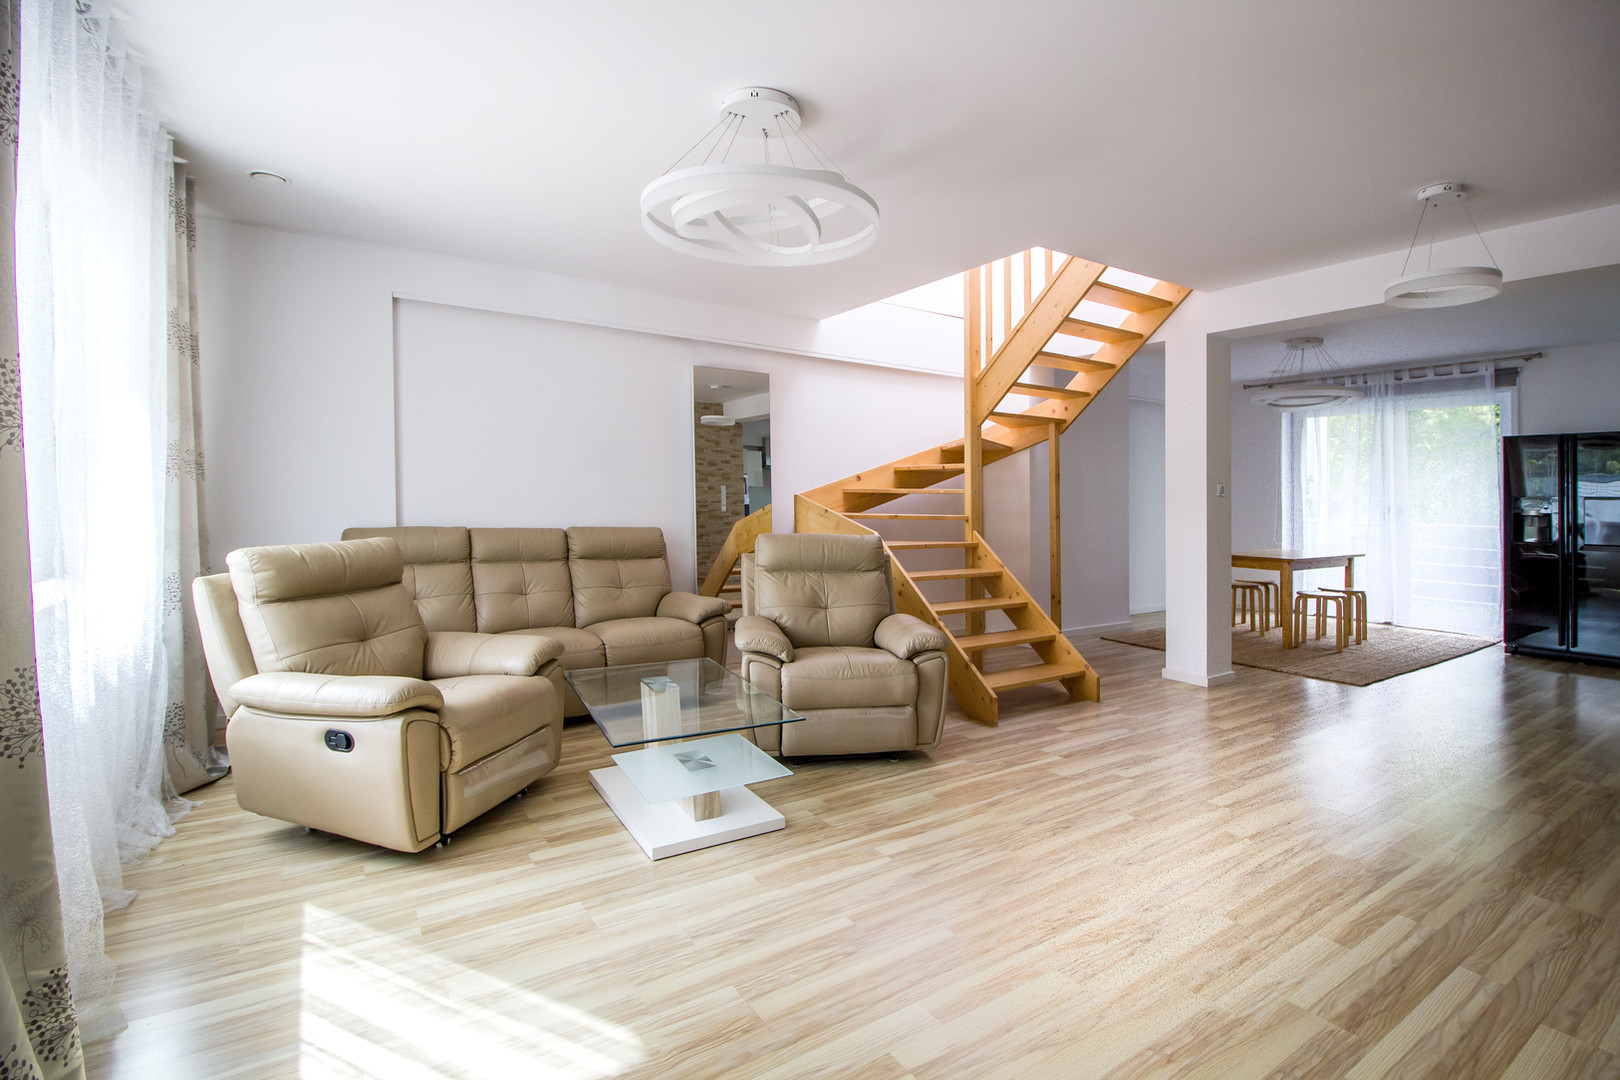 House for rent Poznan Poland (18 of 31).